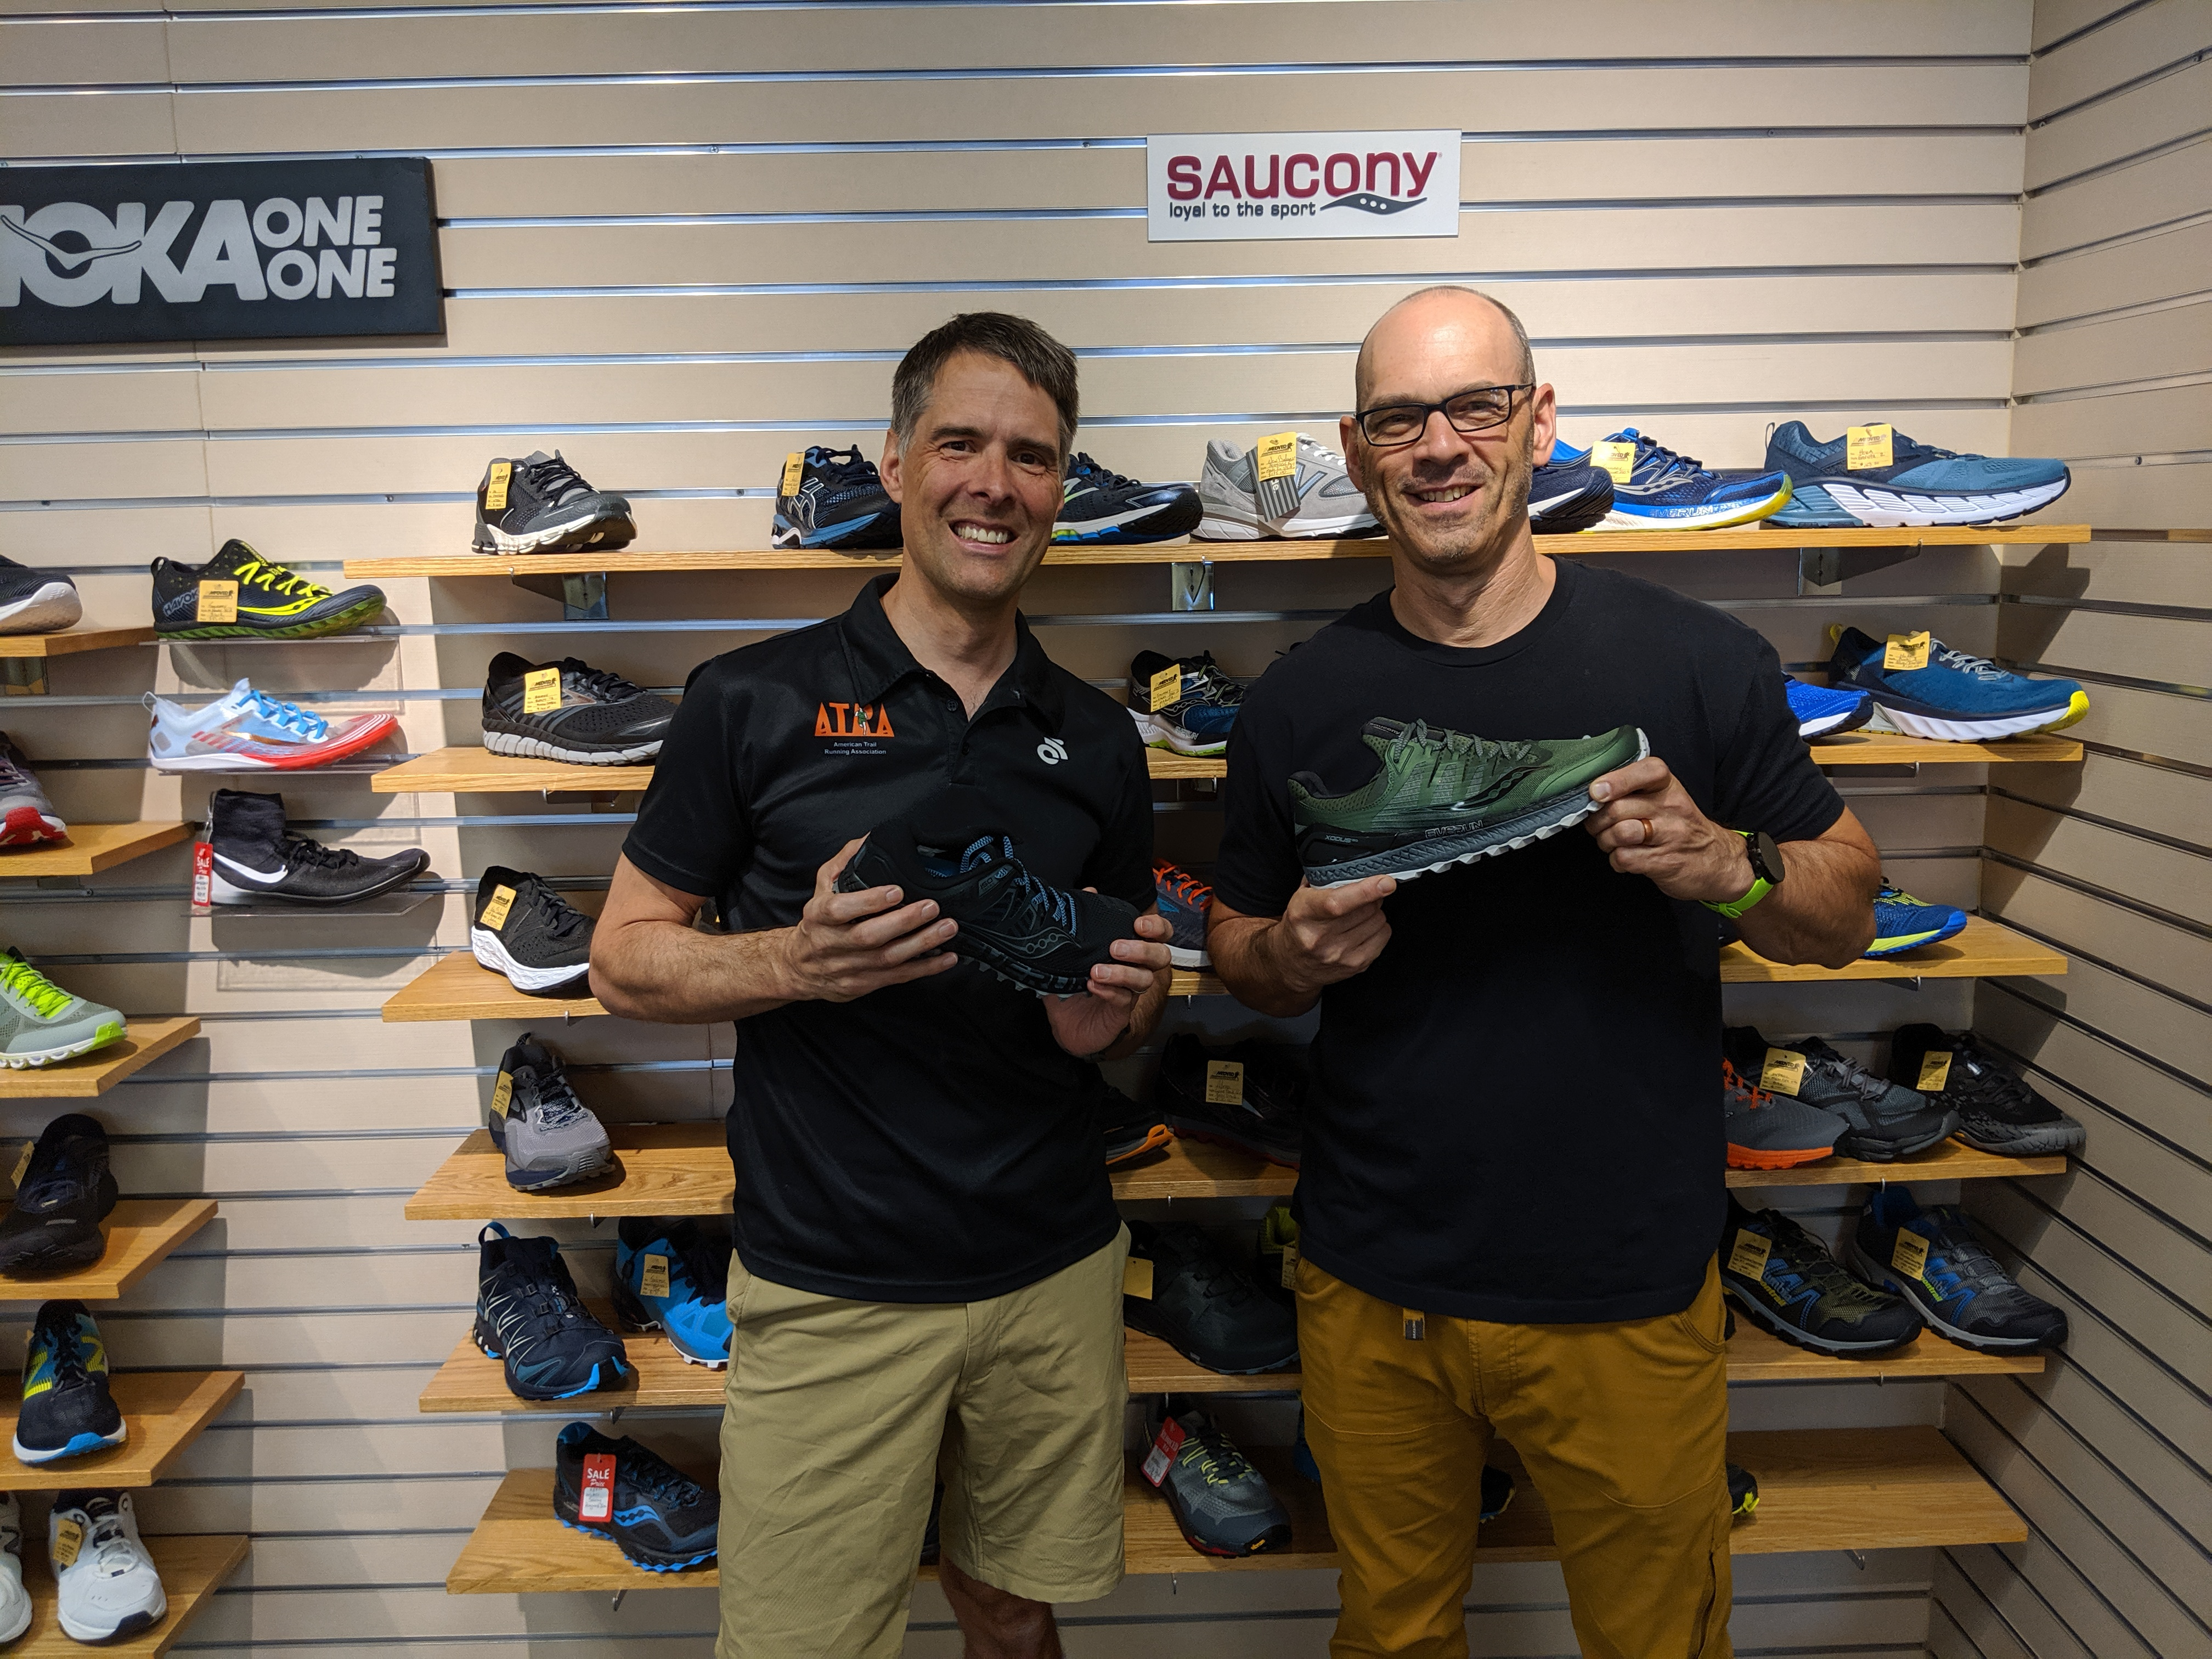 Local Running Specialty Stores — ATRA